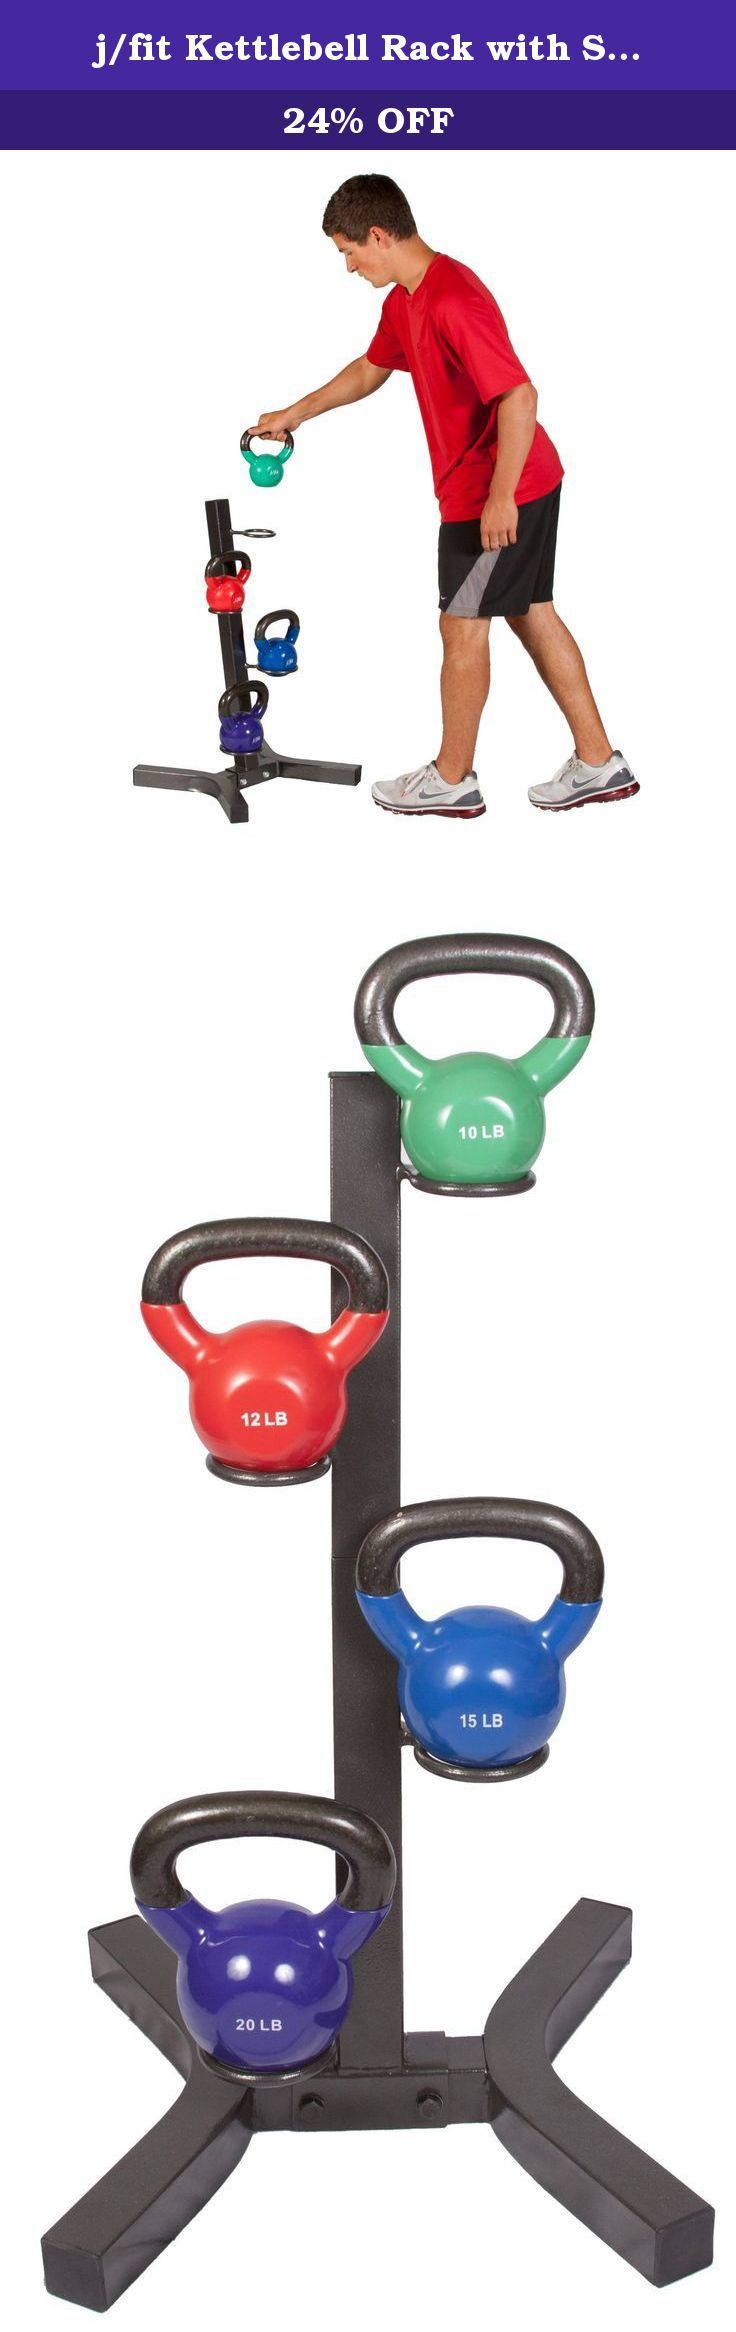 j/fit Kettlebell Rack with Set of 4 Kettlebells. Solid steel rack holds our most popular kettlebell sizes for home use. Keep your kettlebells off of the floor and nicely organized for quick use. A variety of kettlebell sizes allows for a complete home workout.